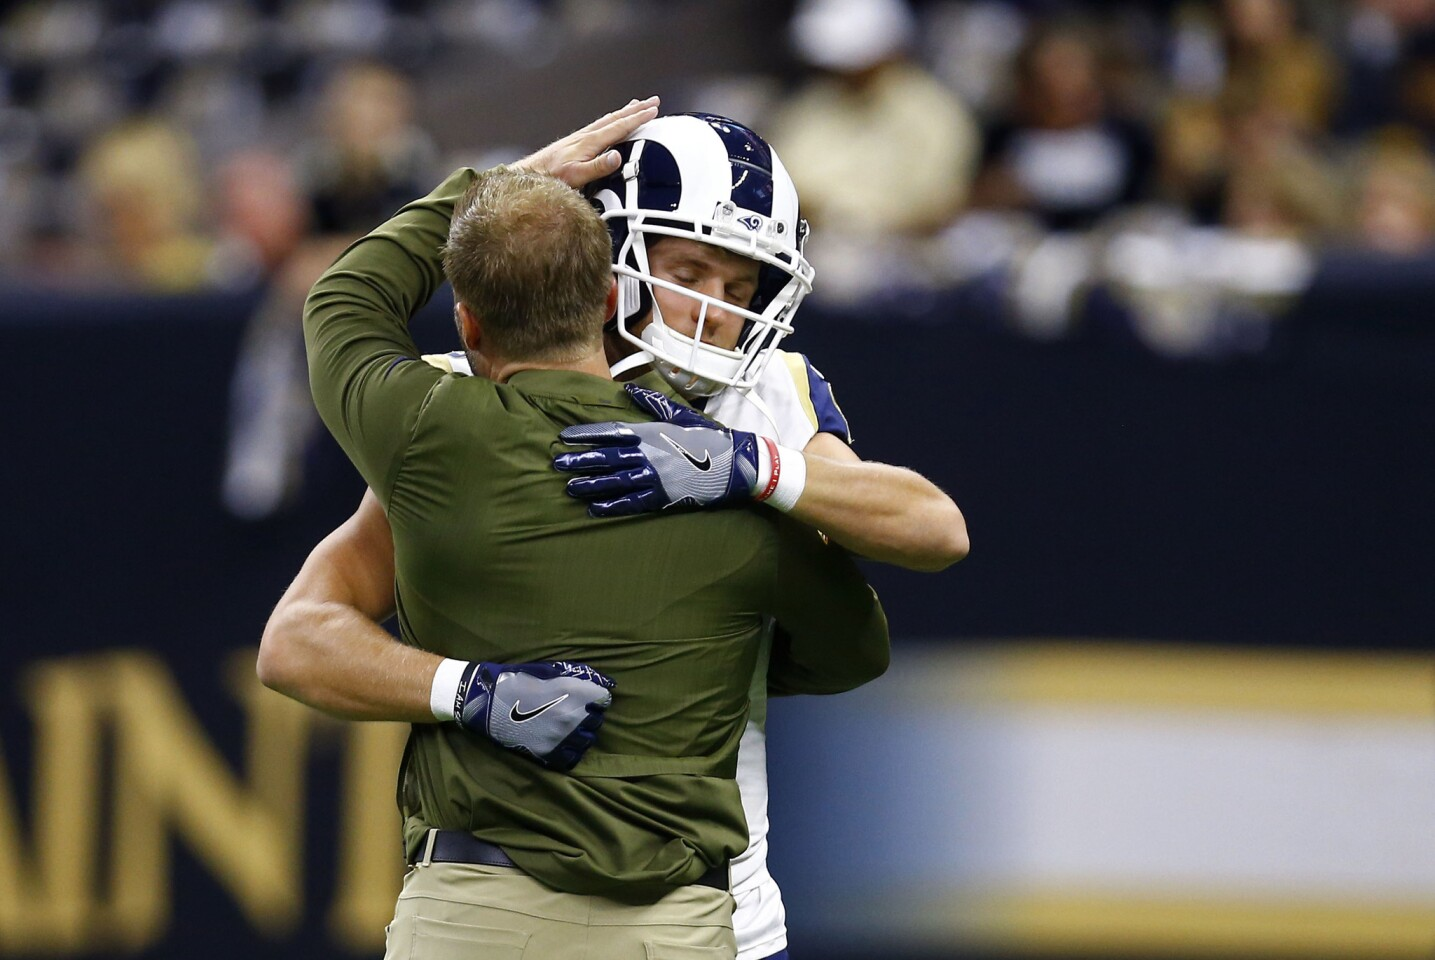 Los Angeles Rams head coach Sean McVay, left, hugs wide receiver Cooper Kupp before an NFL football game against the New Orleans Saints in New Orleans, Sunday, Nov. 4, 2018.